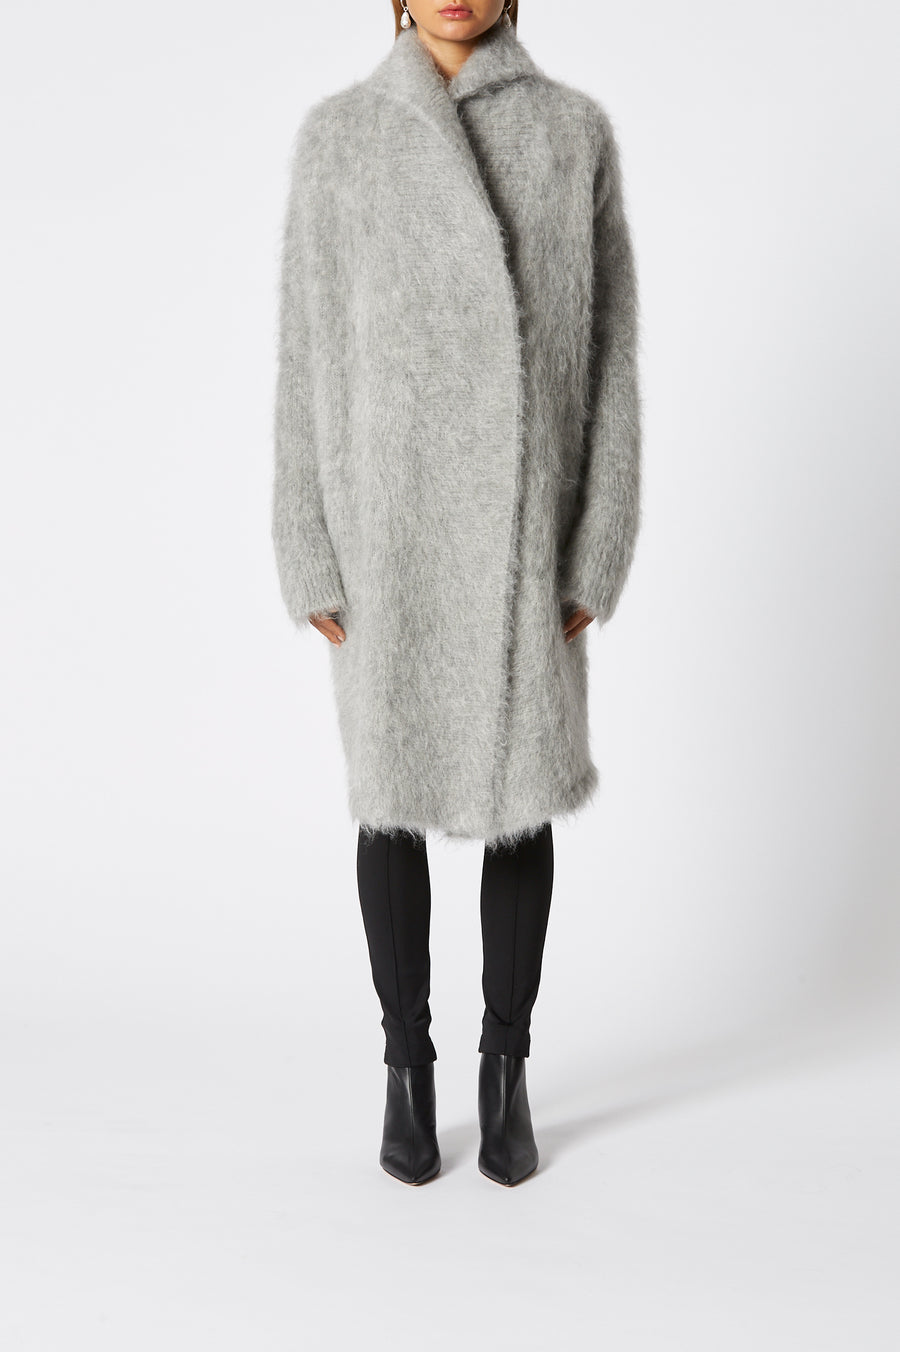 Brushed Mohair Cardigan, oversized, long sleeve, falls below knee, color Grey Melange